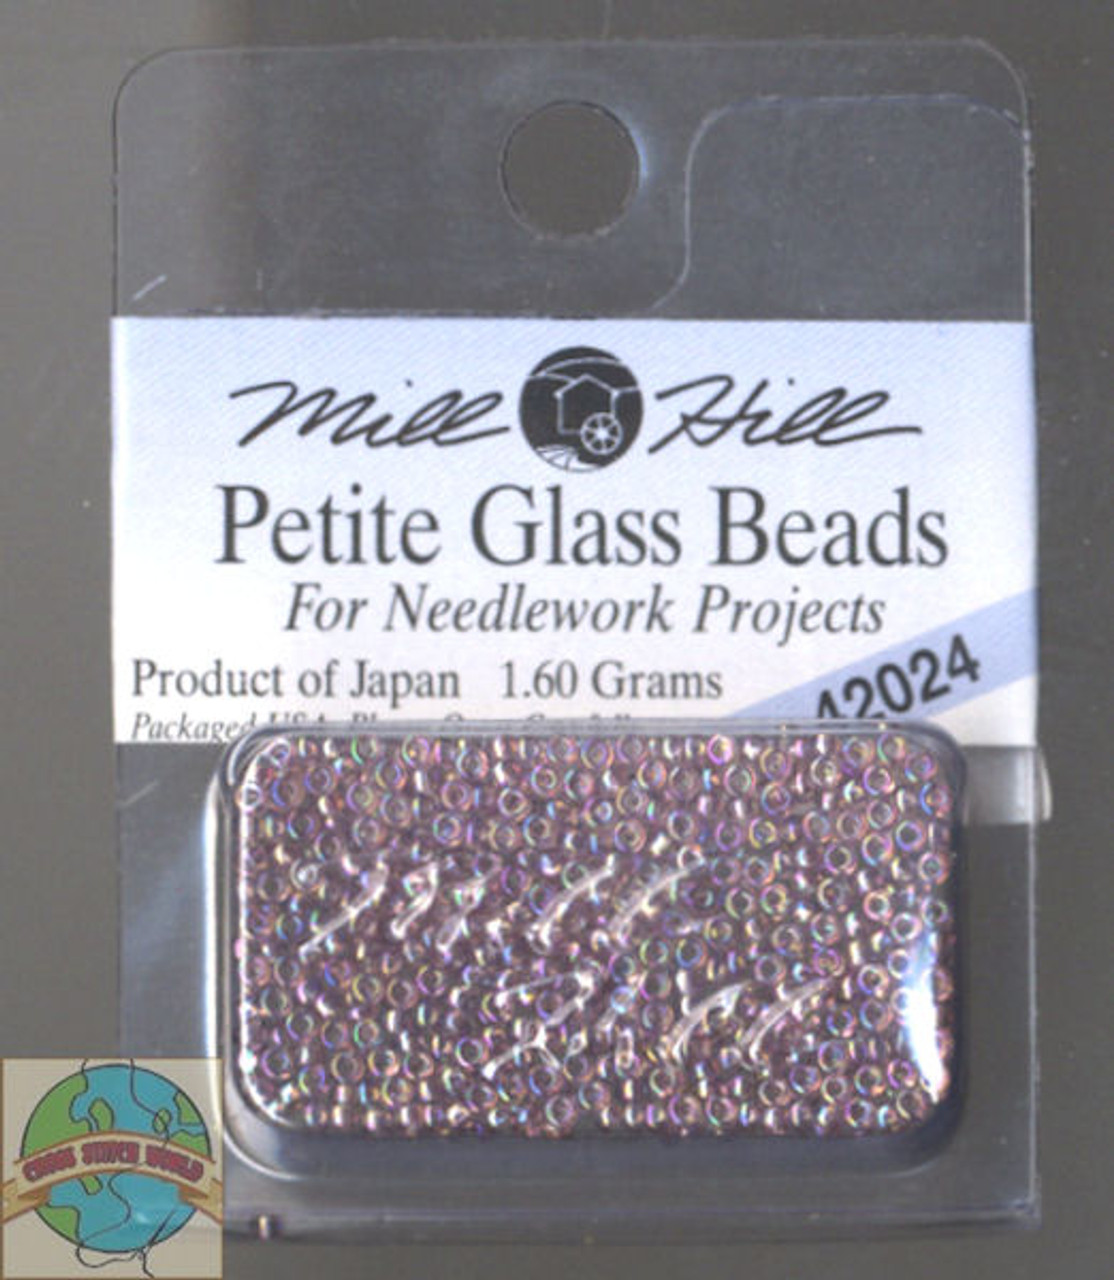 Mill Hill Petite Glass Beads 1.60g Heather Mauve